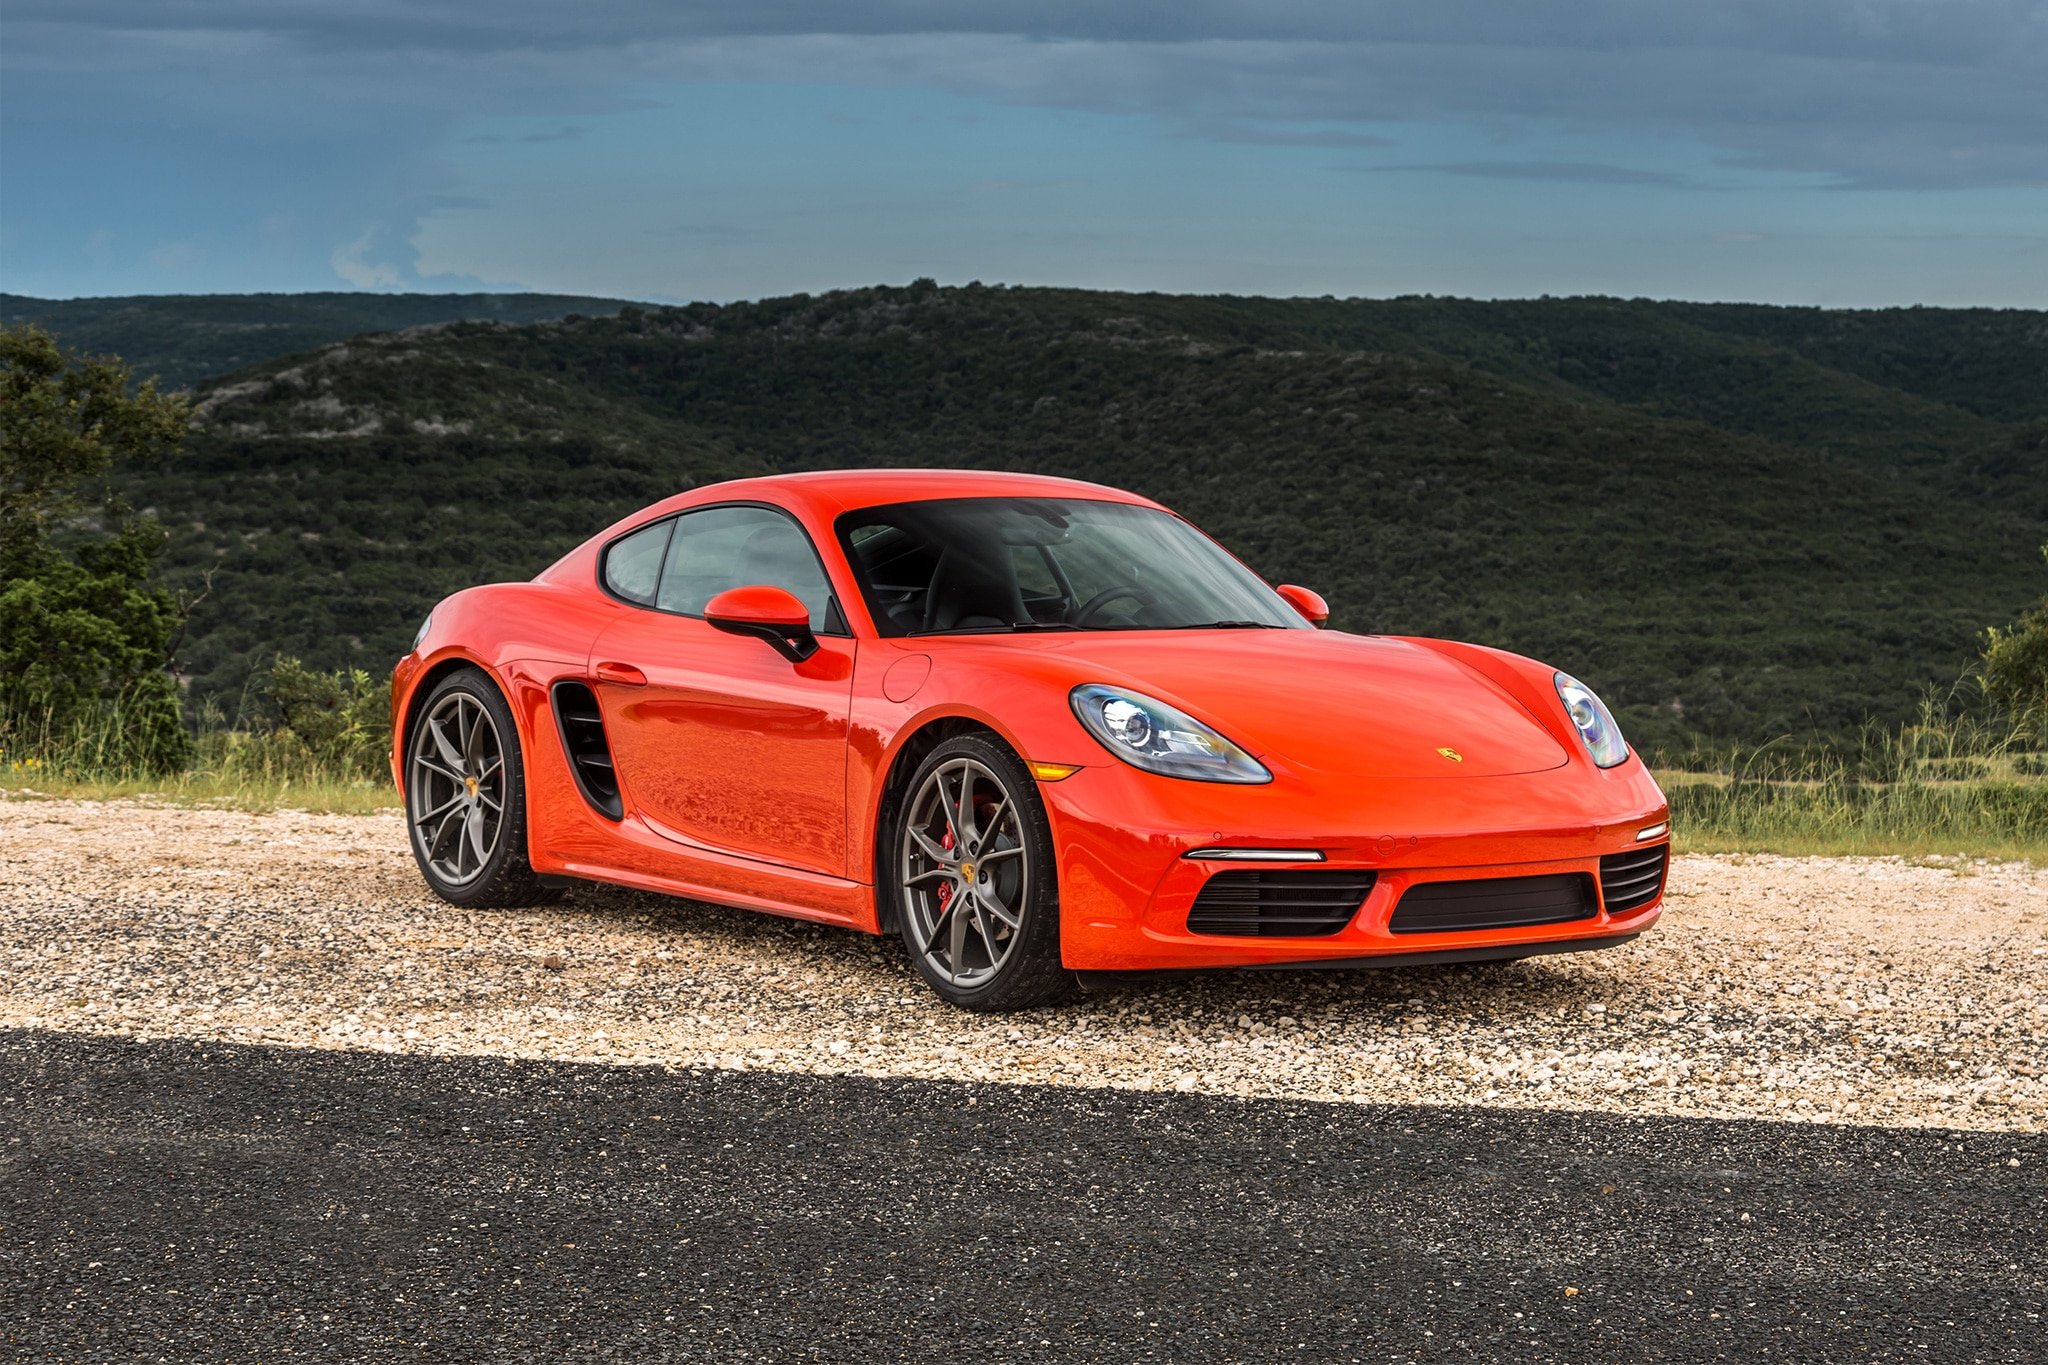 Porsche Makes Over $17000 In Profit On Every Car It Sells